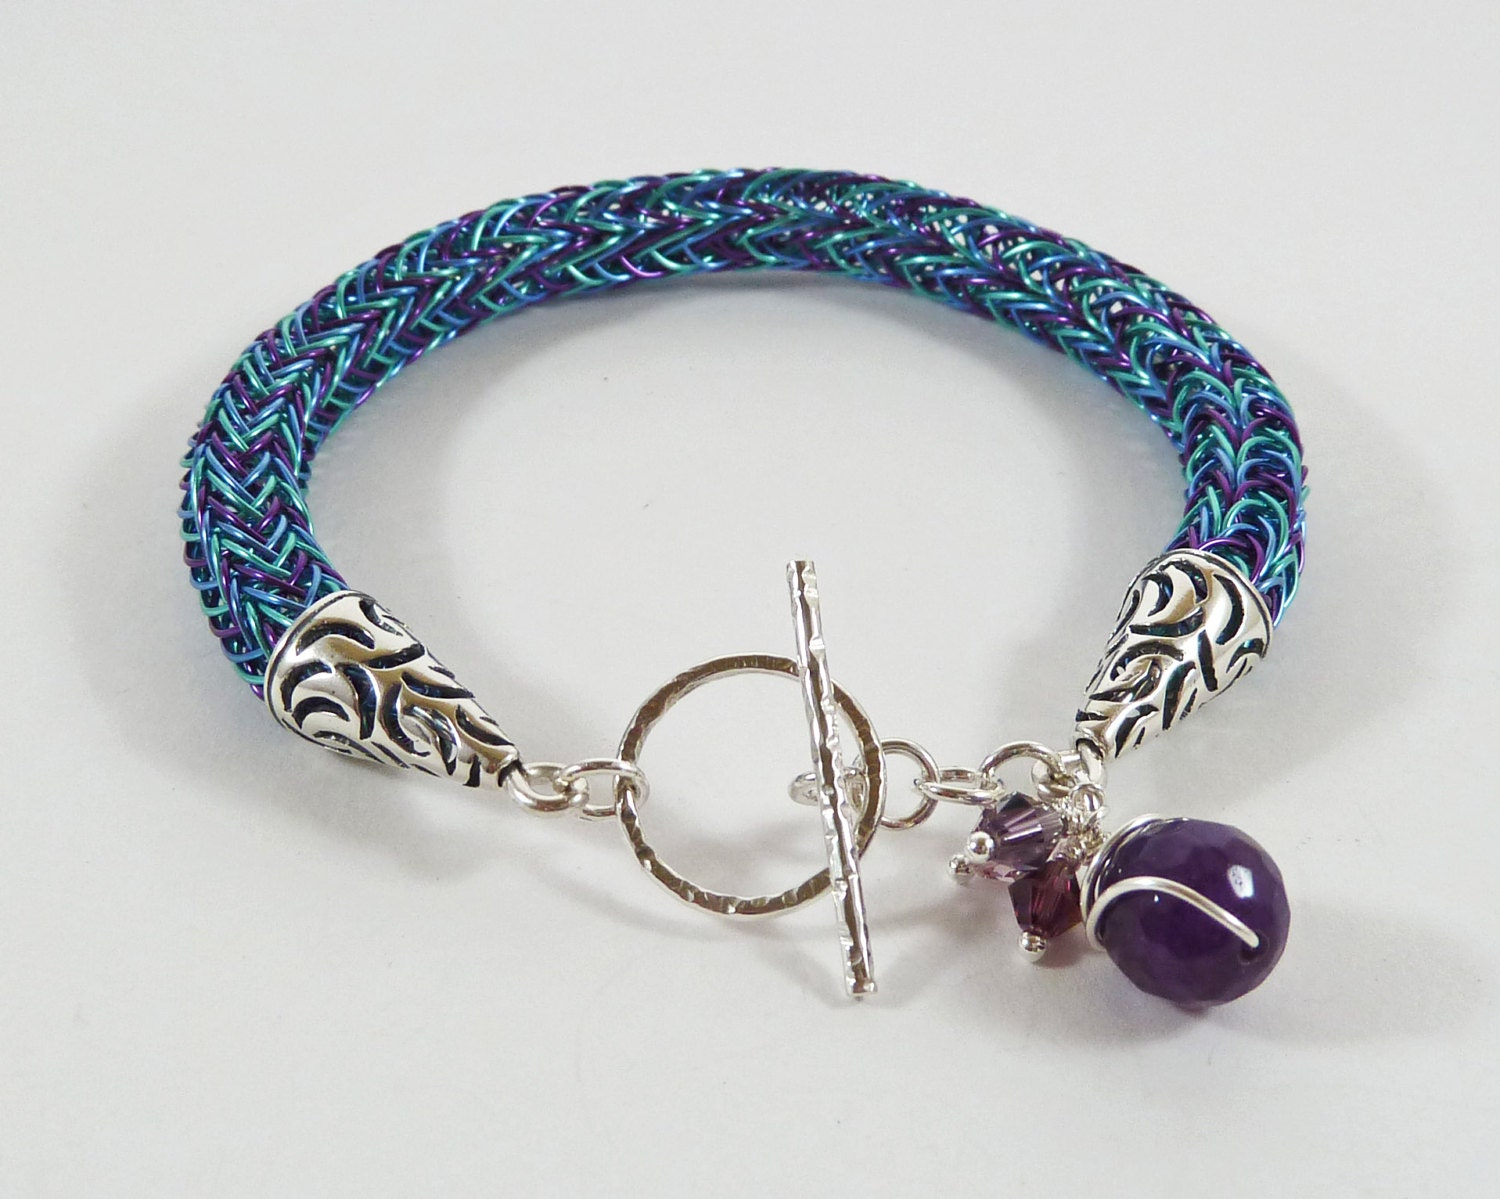 Viking Knit Jewelry Patterns : Viking Knit Bracelet Wirework Torque Blue Purple Sterling